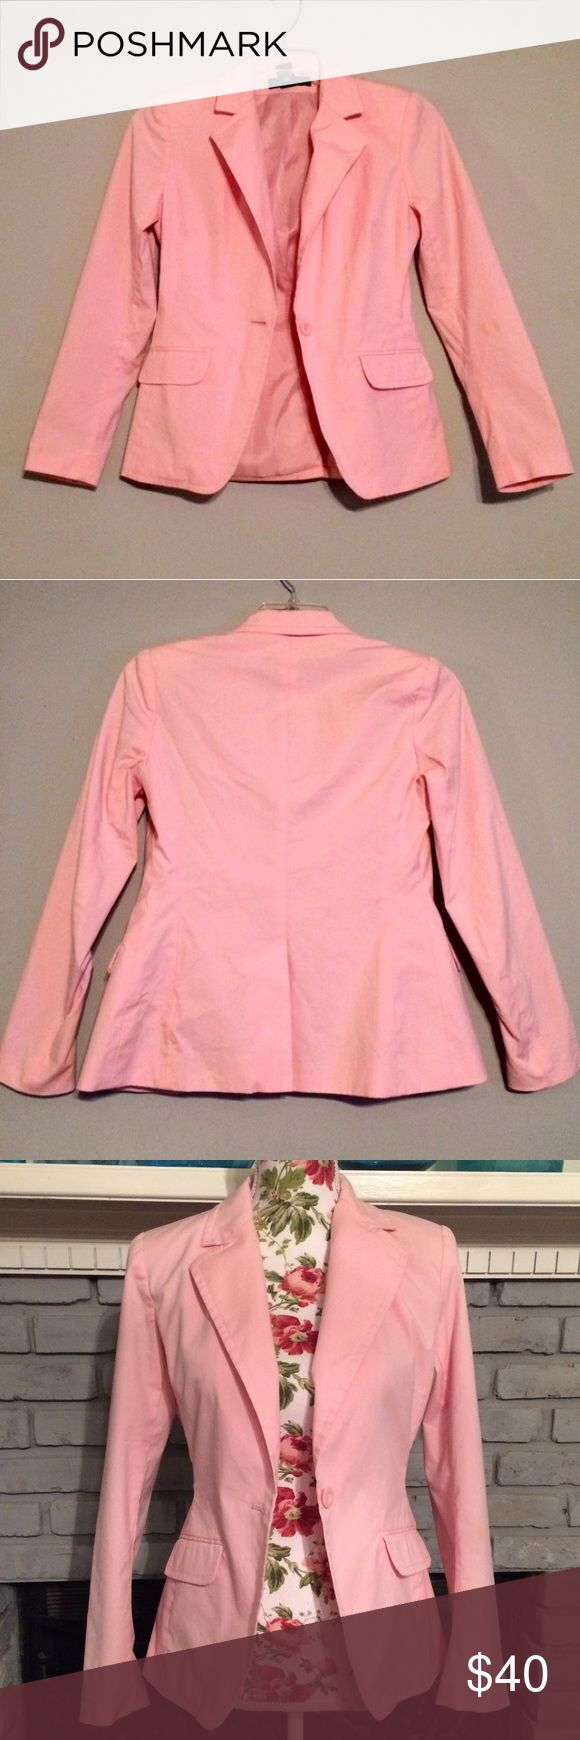 "NY&Co Pink Blazer Jacket Padded Workwear Chic EUC! Beautiful light pink blazer jacket by New York & Company. Has shoulder pads for a little structure. Adult size 2. Classic lapels, one-button front closure, split back. Two faux front pockets. Approx 22"" length from shoulder to hem. No trades/holds. New York & Company Jackets & Coats Blazers"